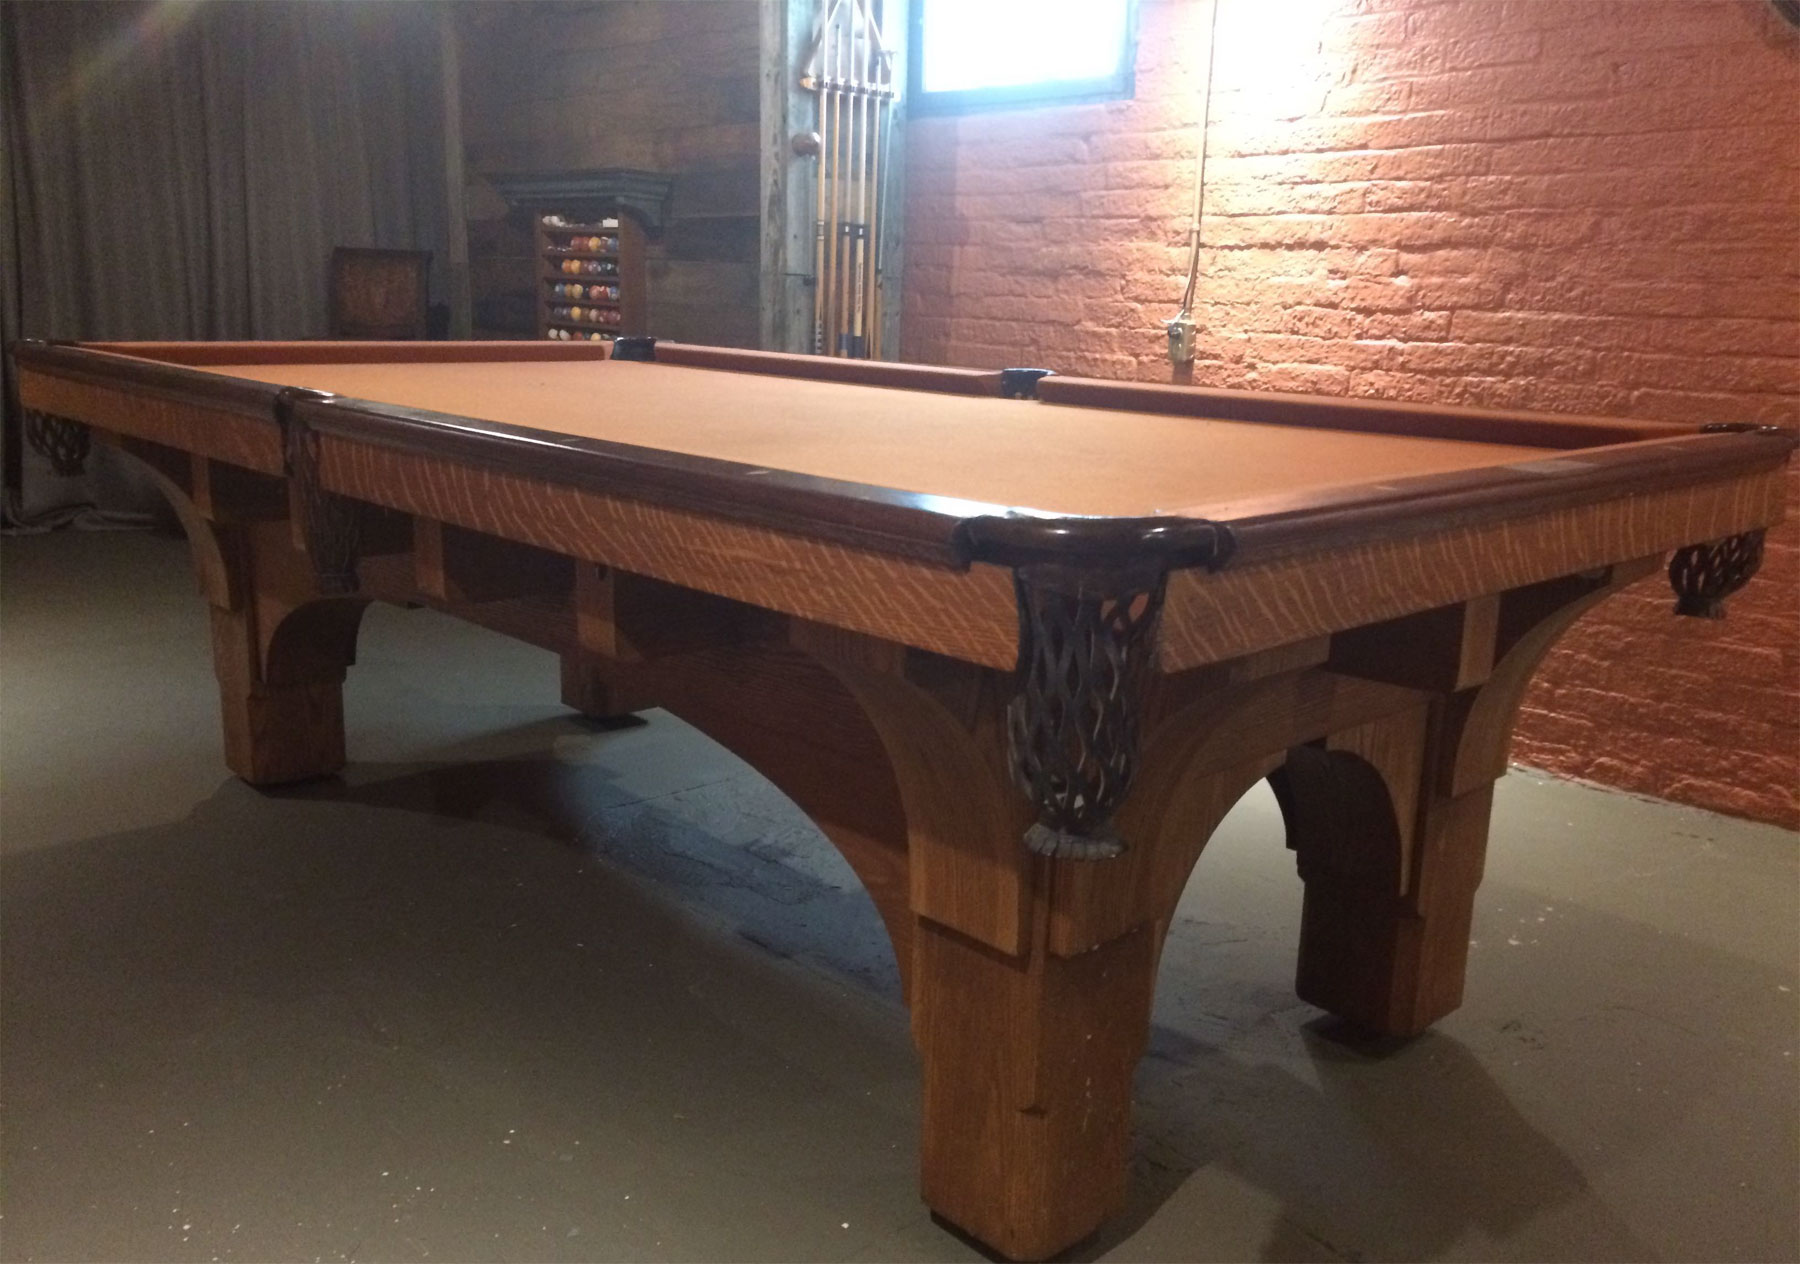 Help Identify Old Solid Wood Pool Table - Pool table help